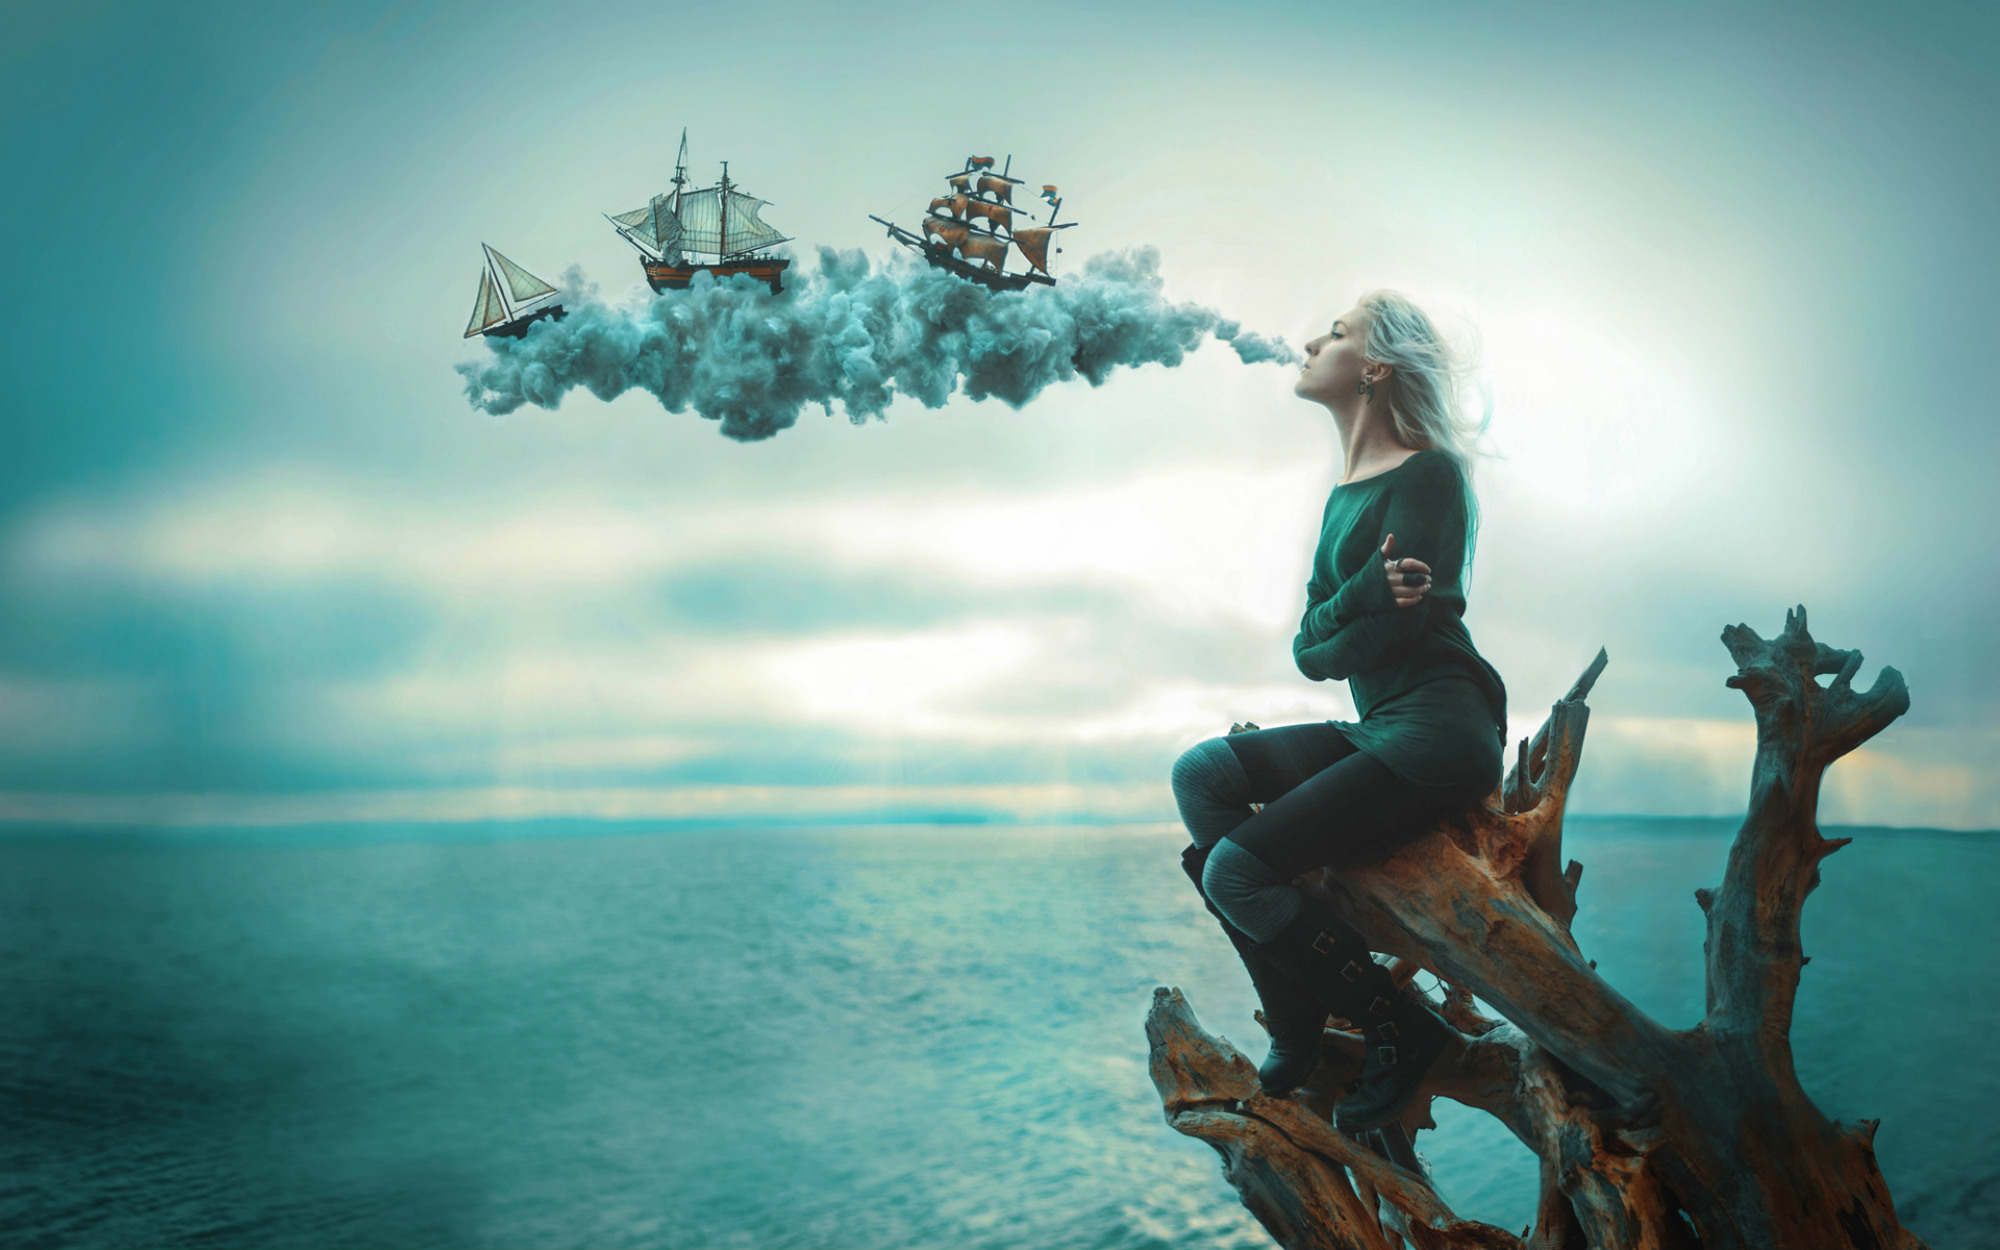 A Strong Wind Blows: Photography by Krista Nikole